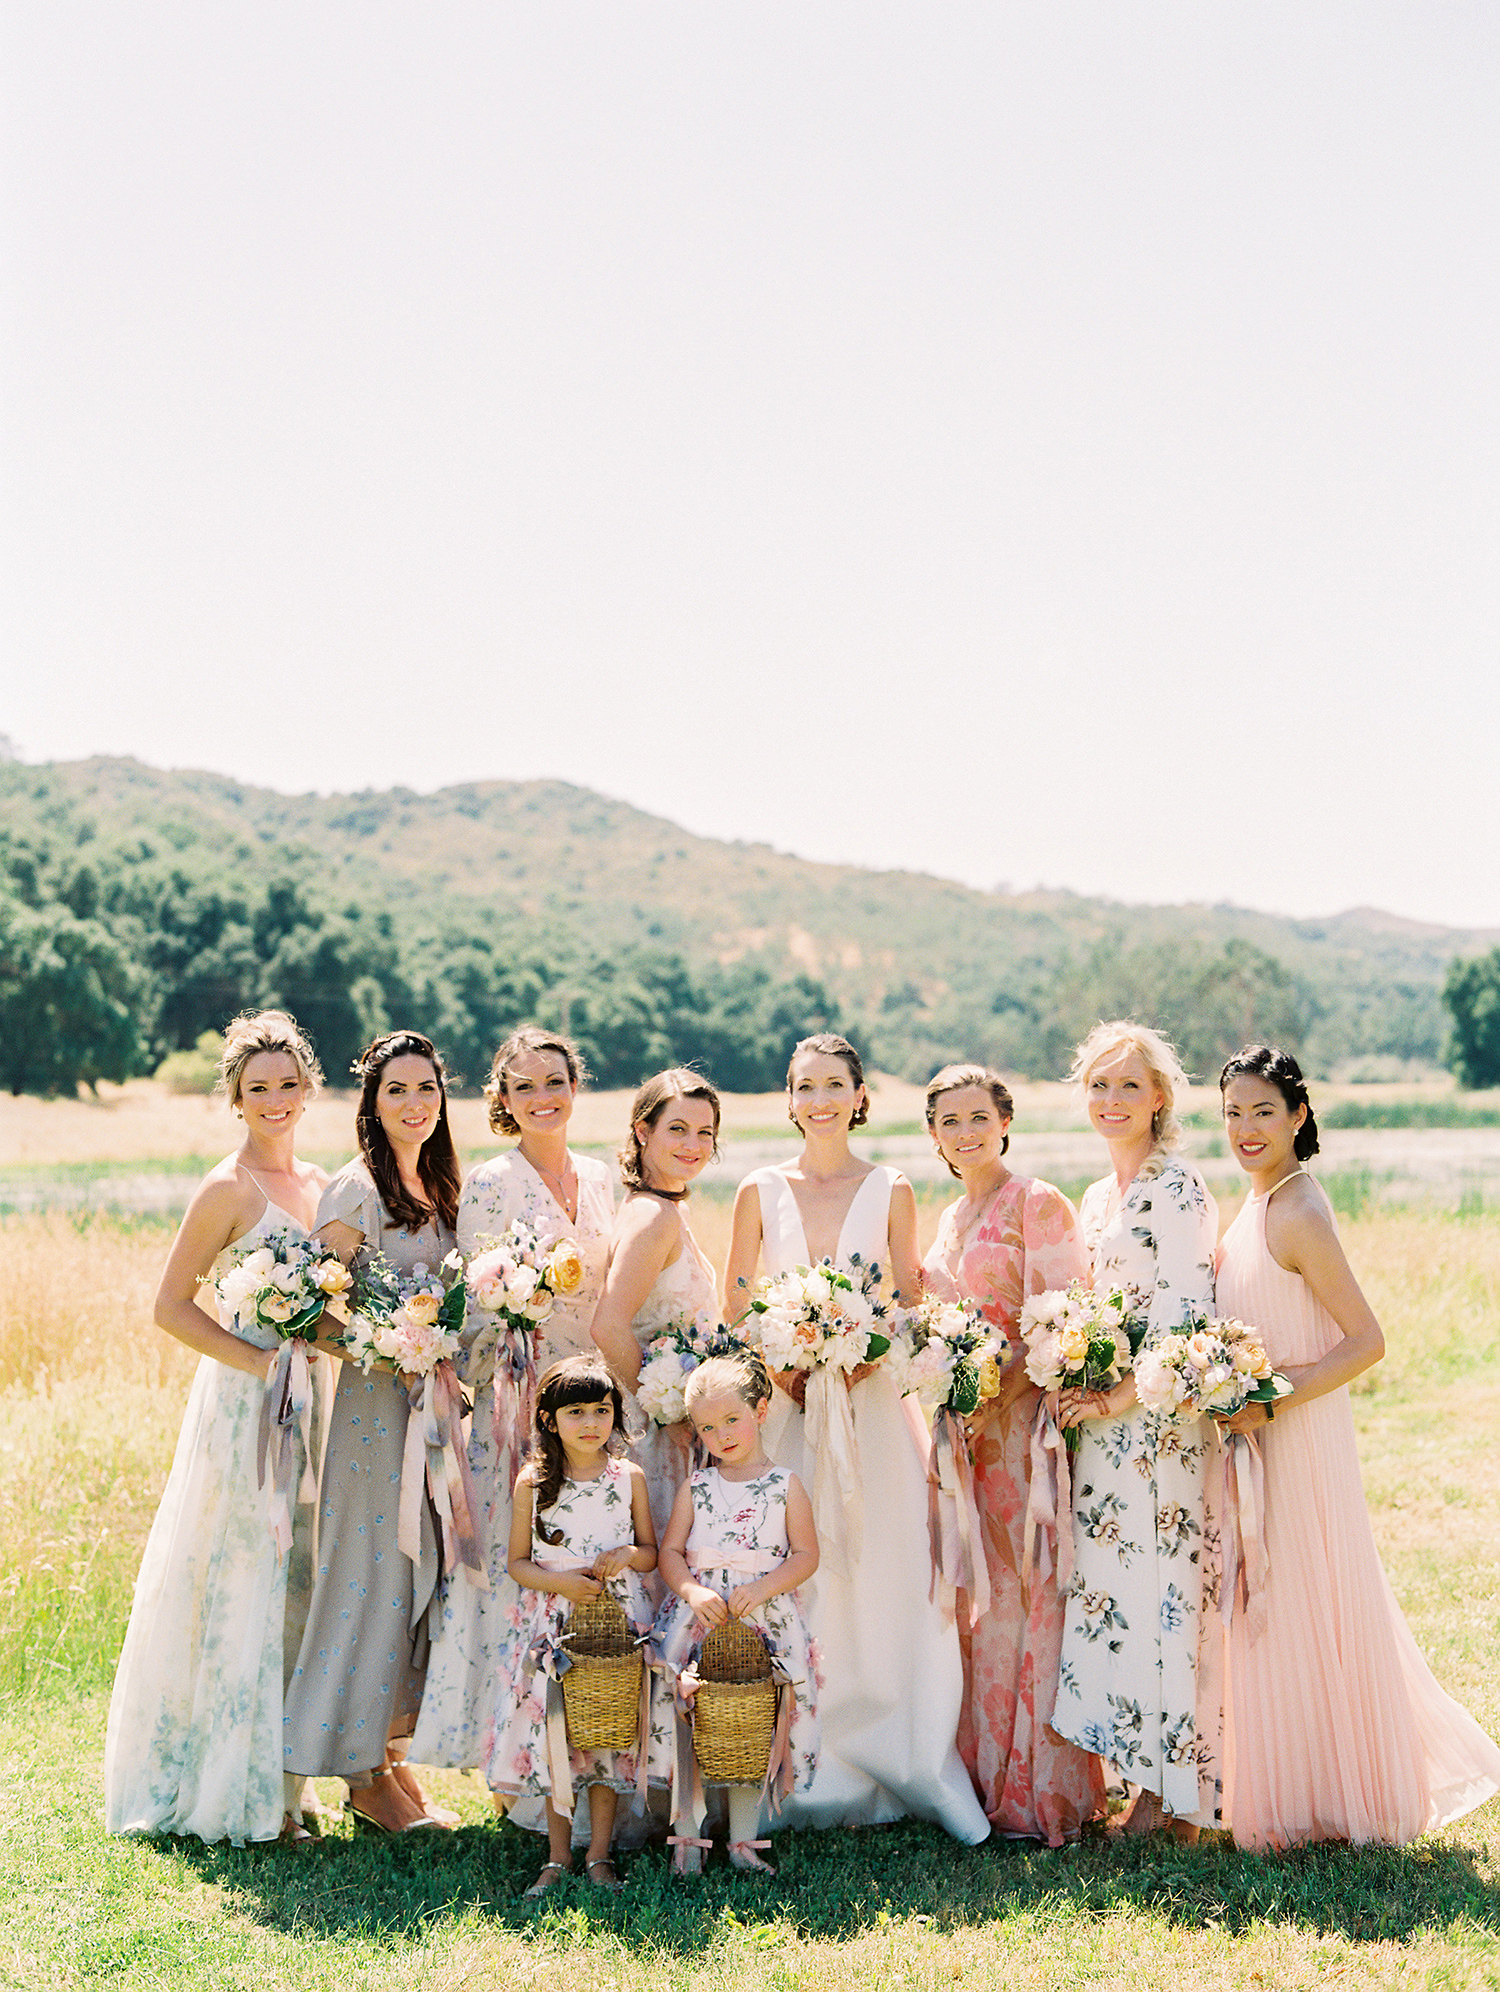 Patterned Bridesmaids' Dresses